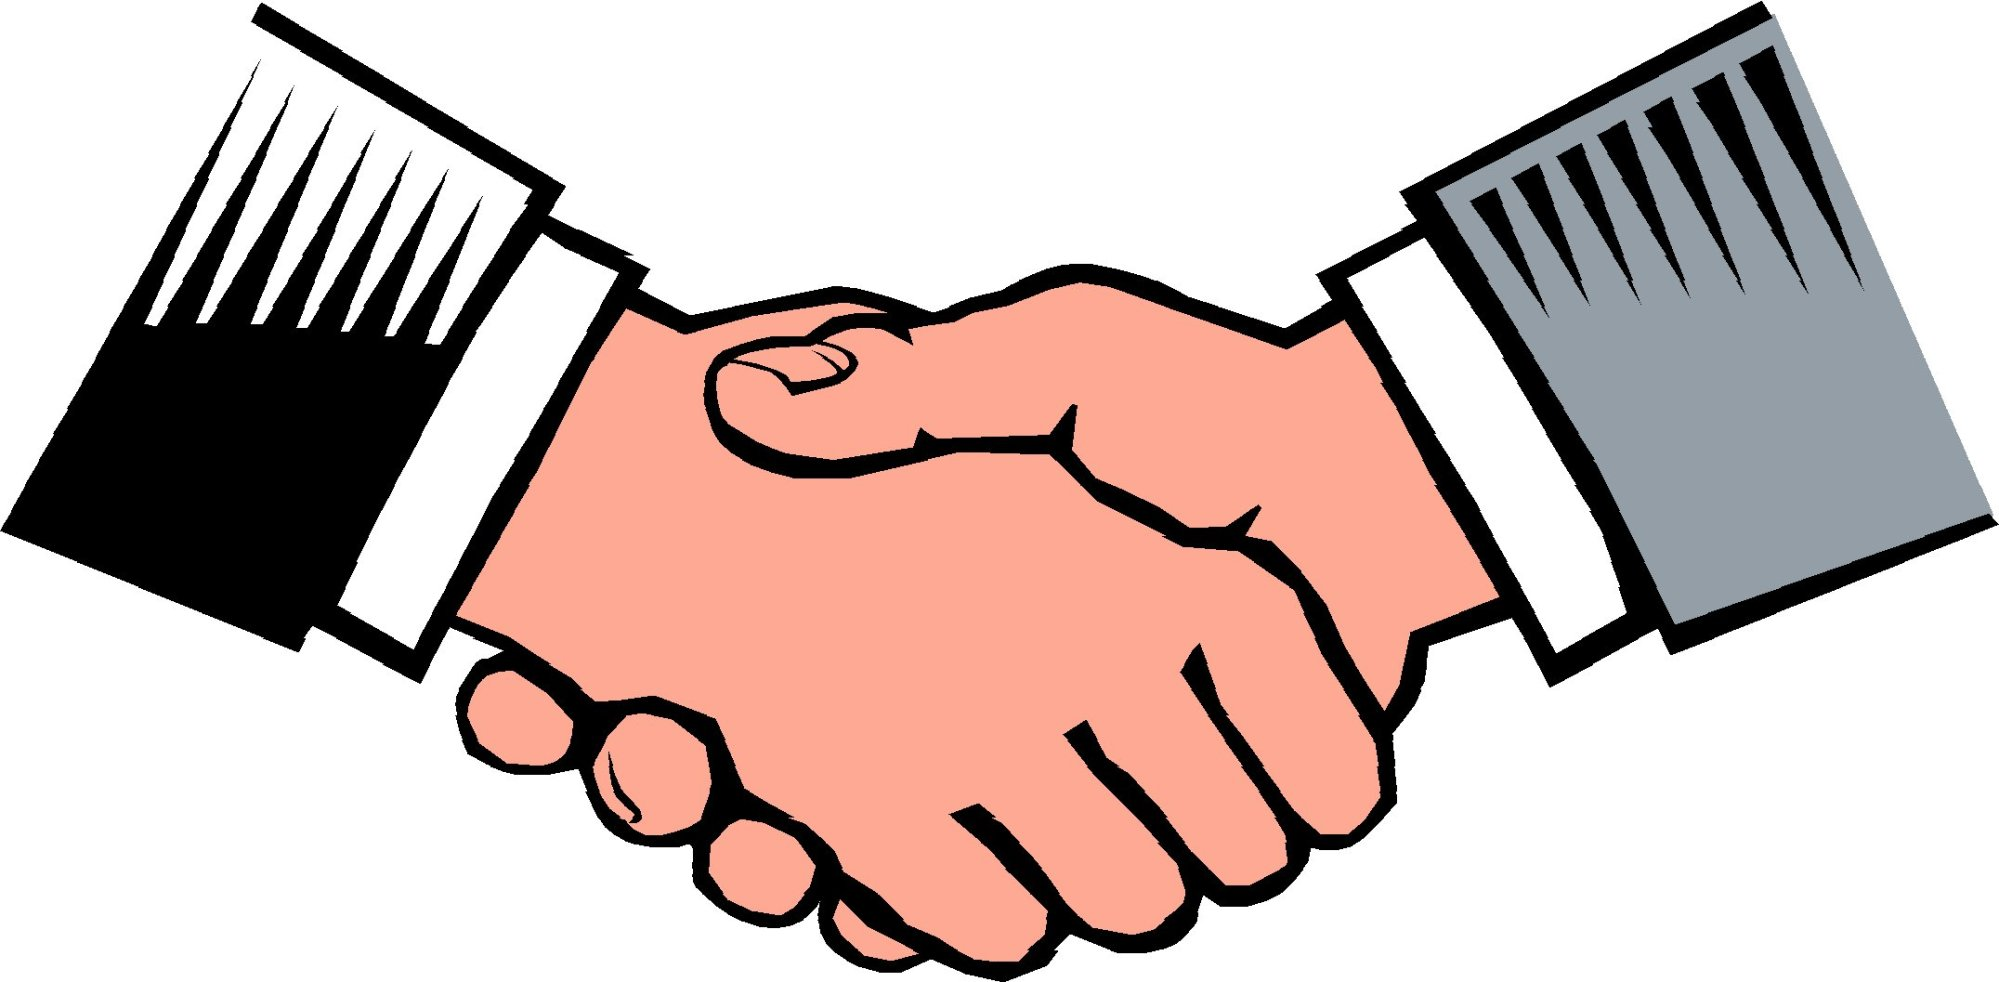 hight resolution of 2152x1057 handshake shaking hands hand shake clip art related cliparts